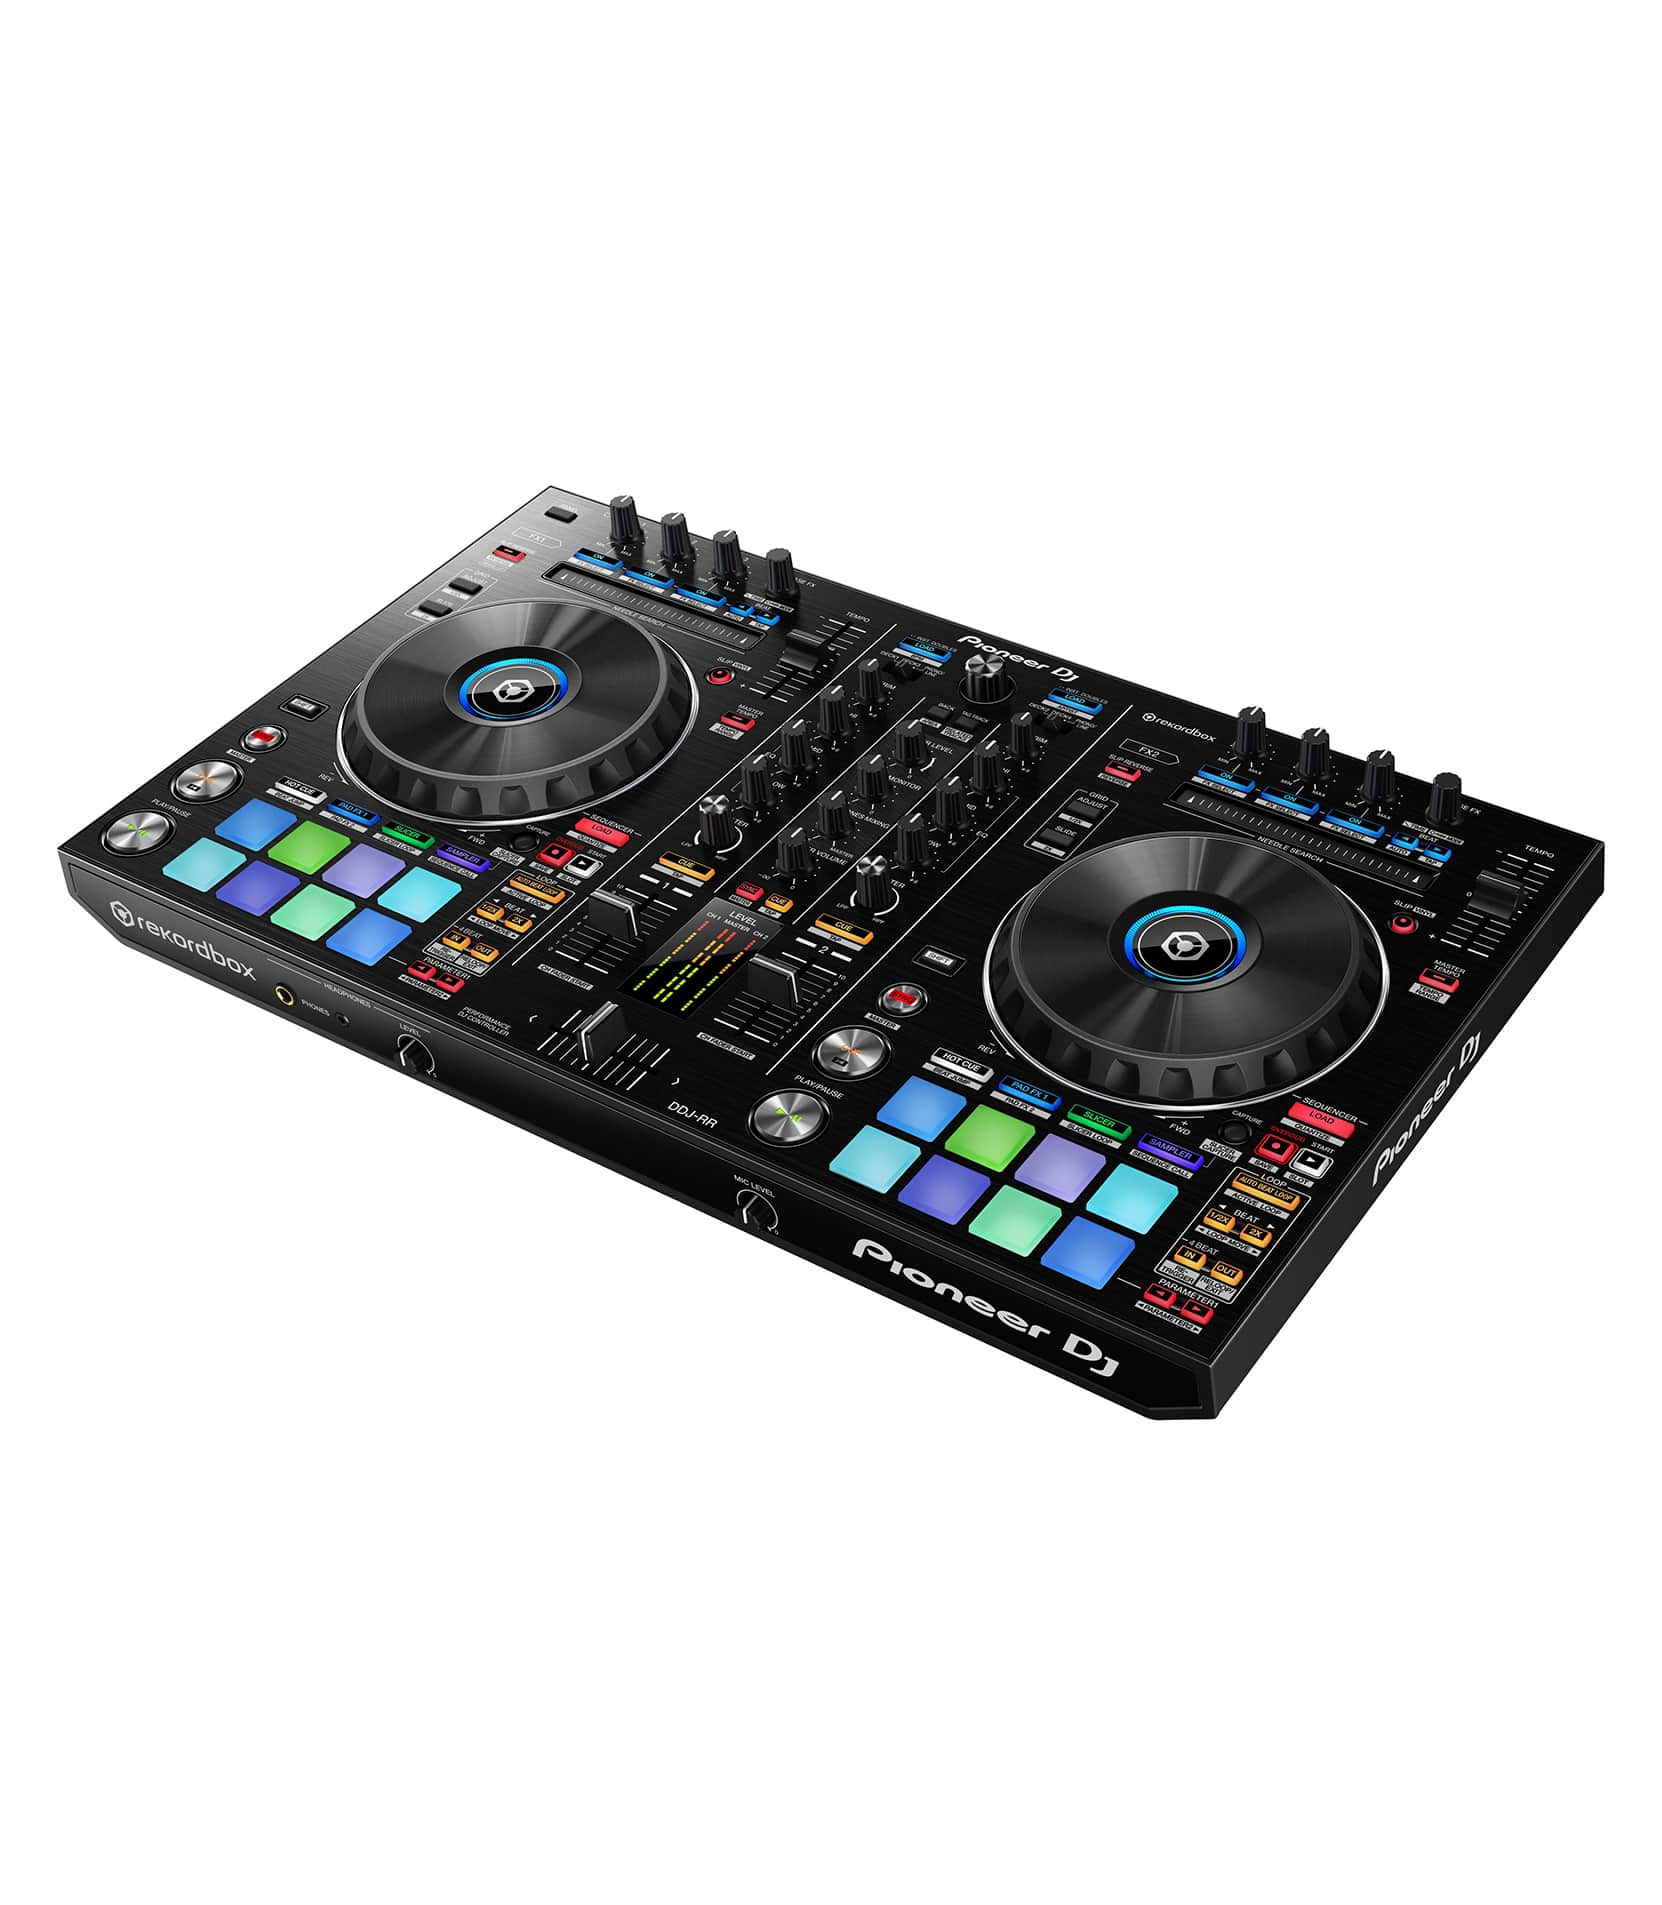 Portable 2 channel Controller for RekordBox DJ - Buy Online